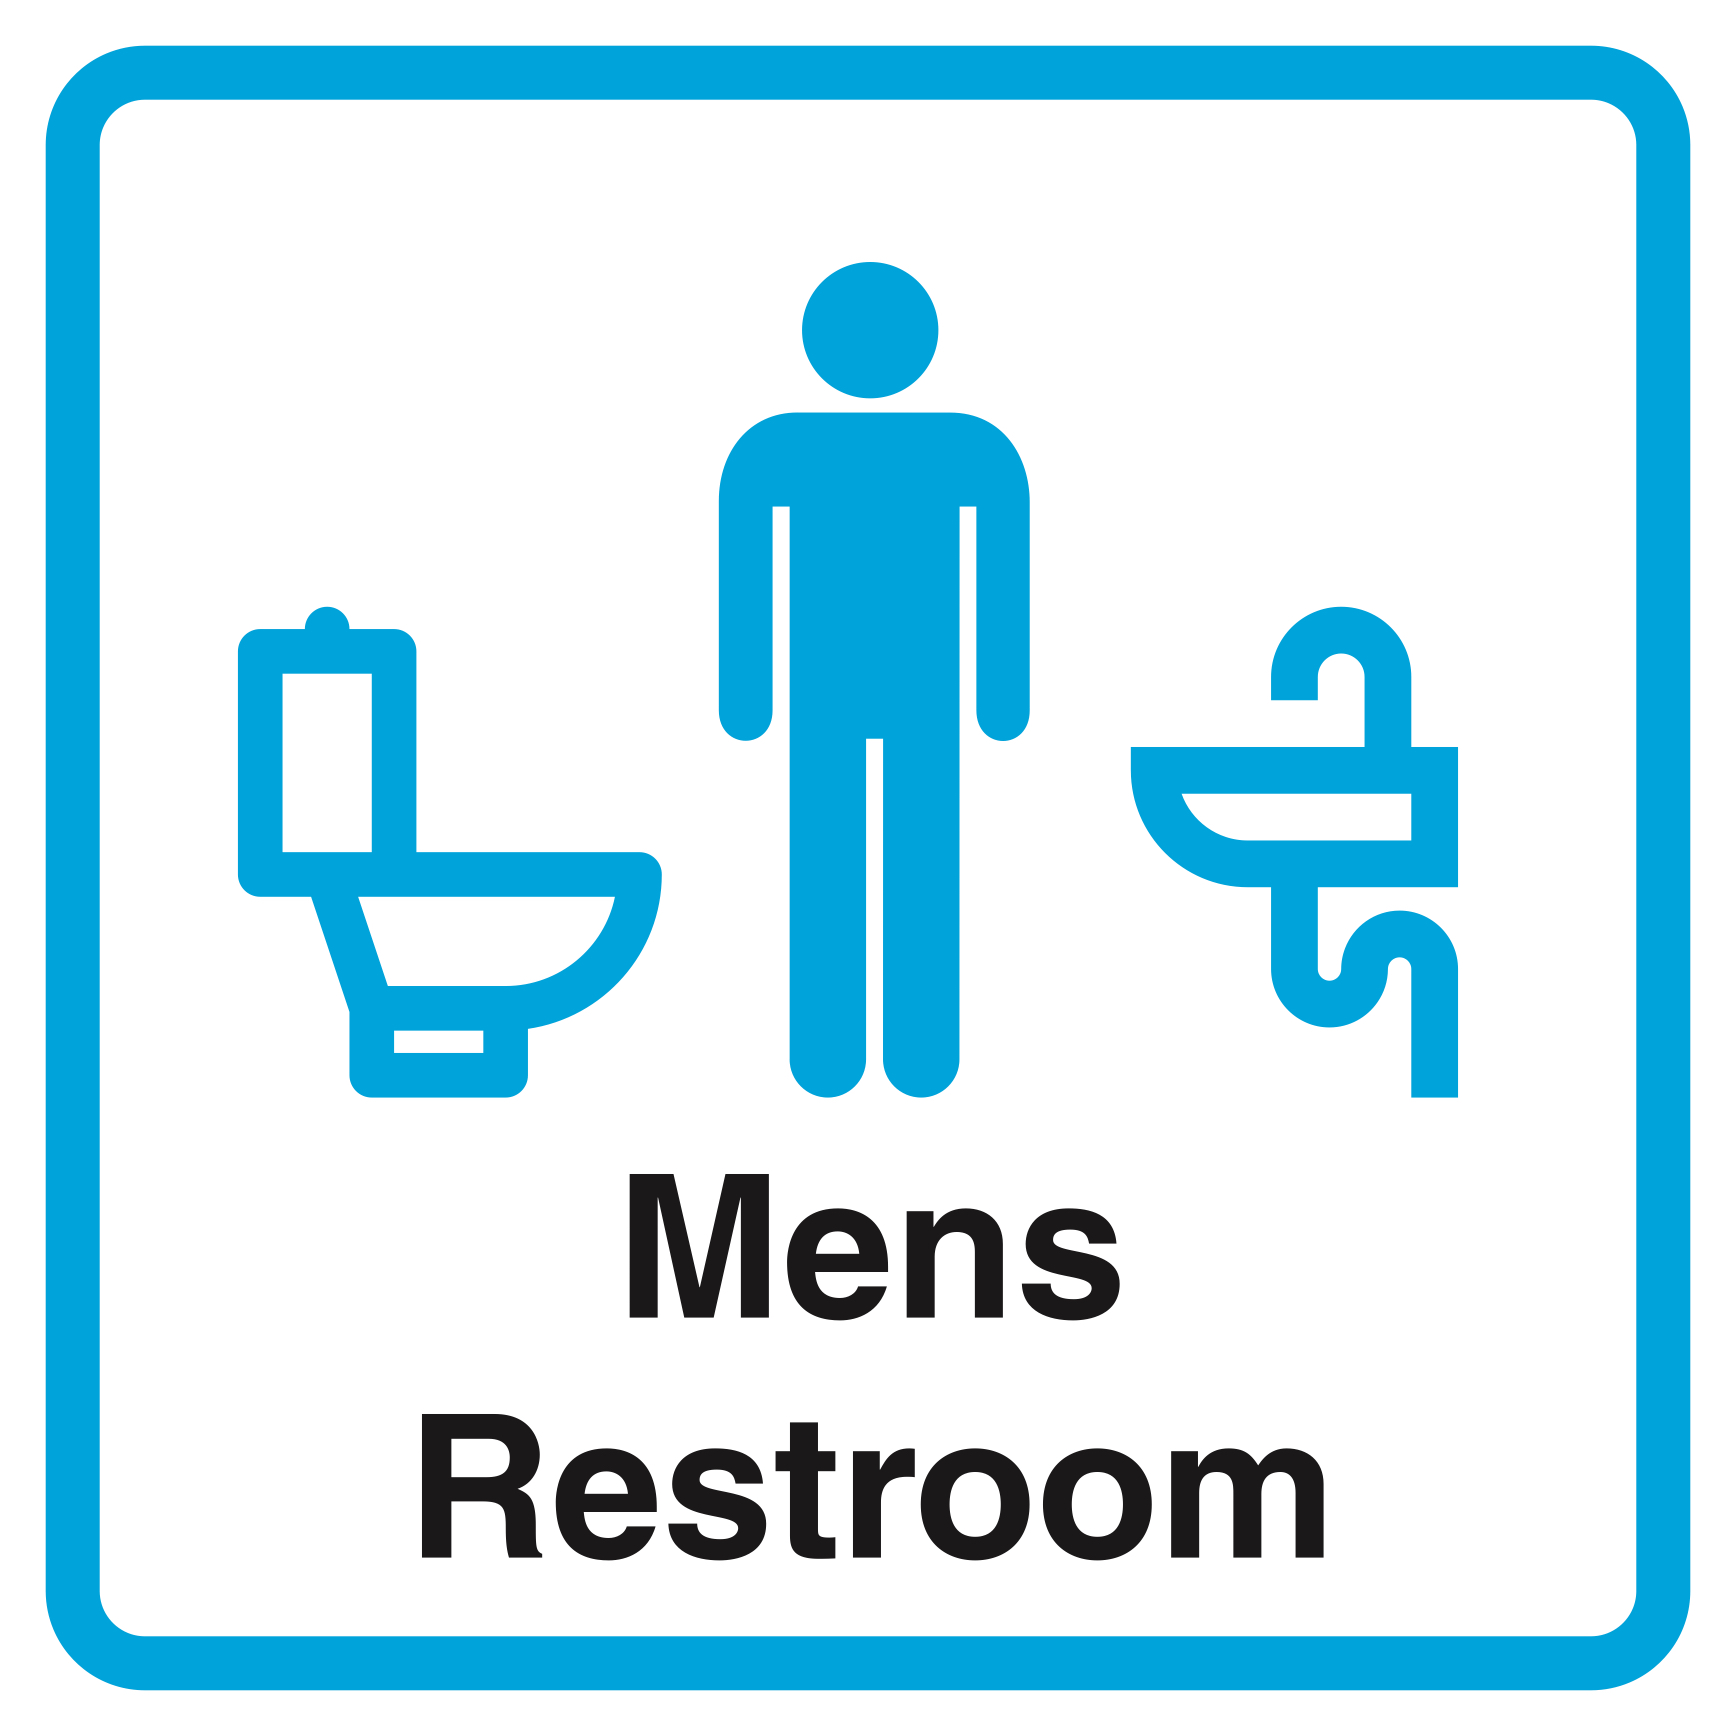 Mens Restroom Print Blue Bathroom Picture Office Business